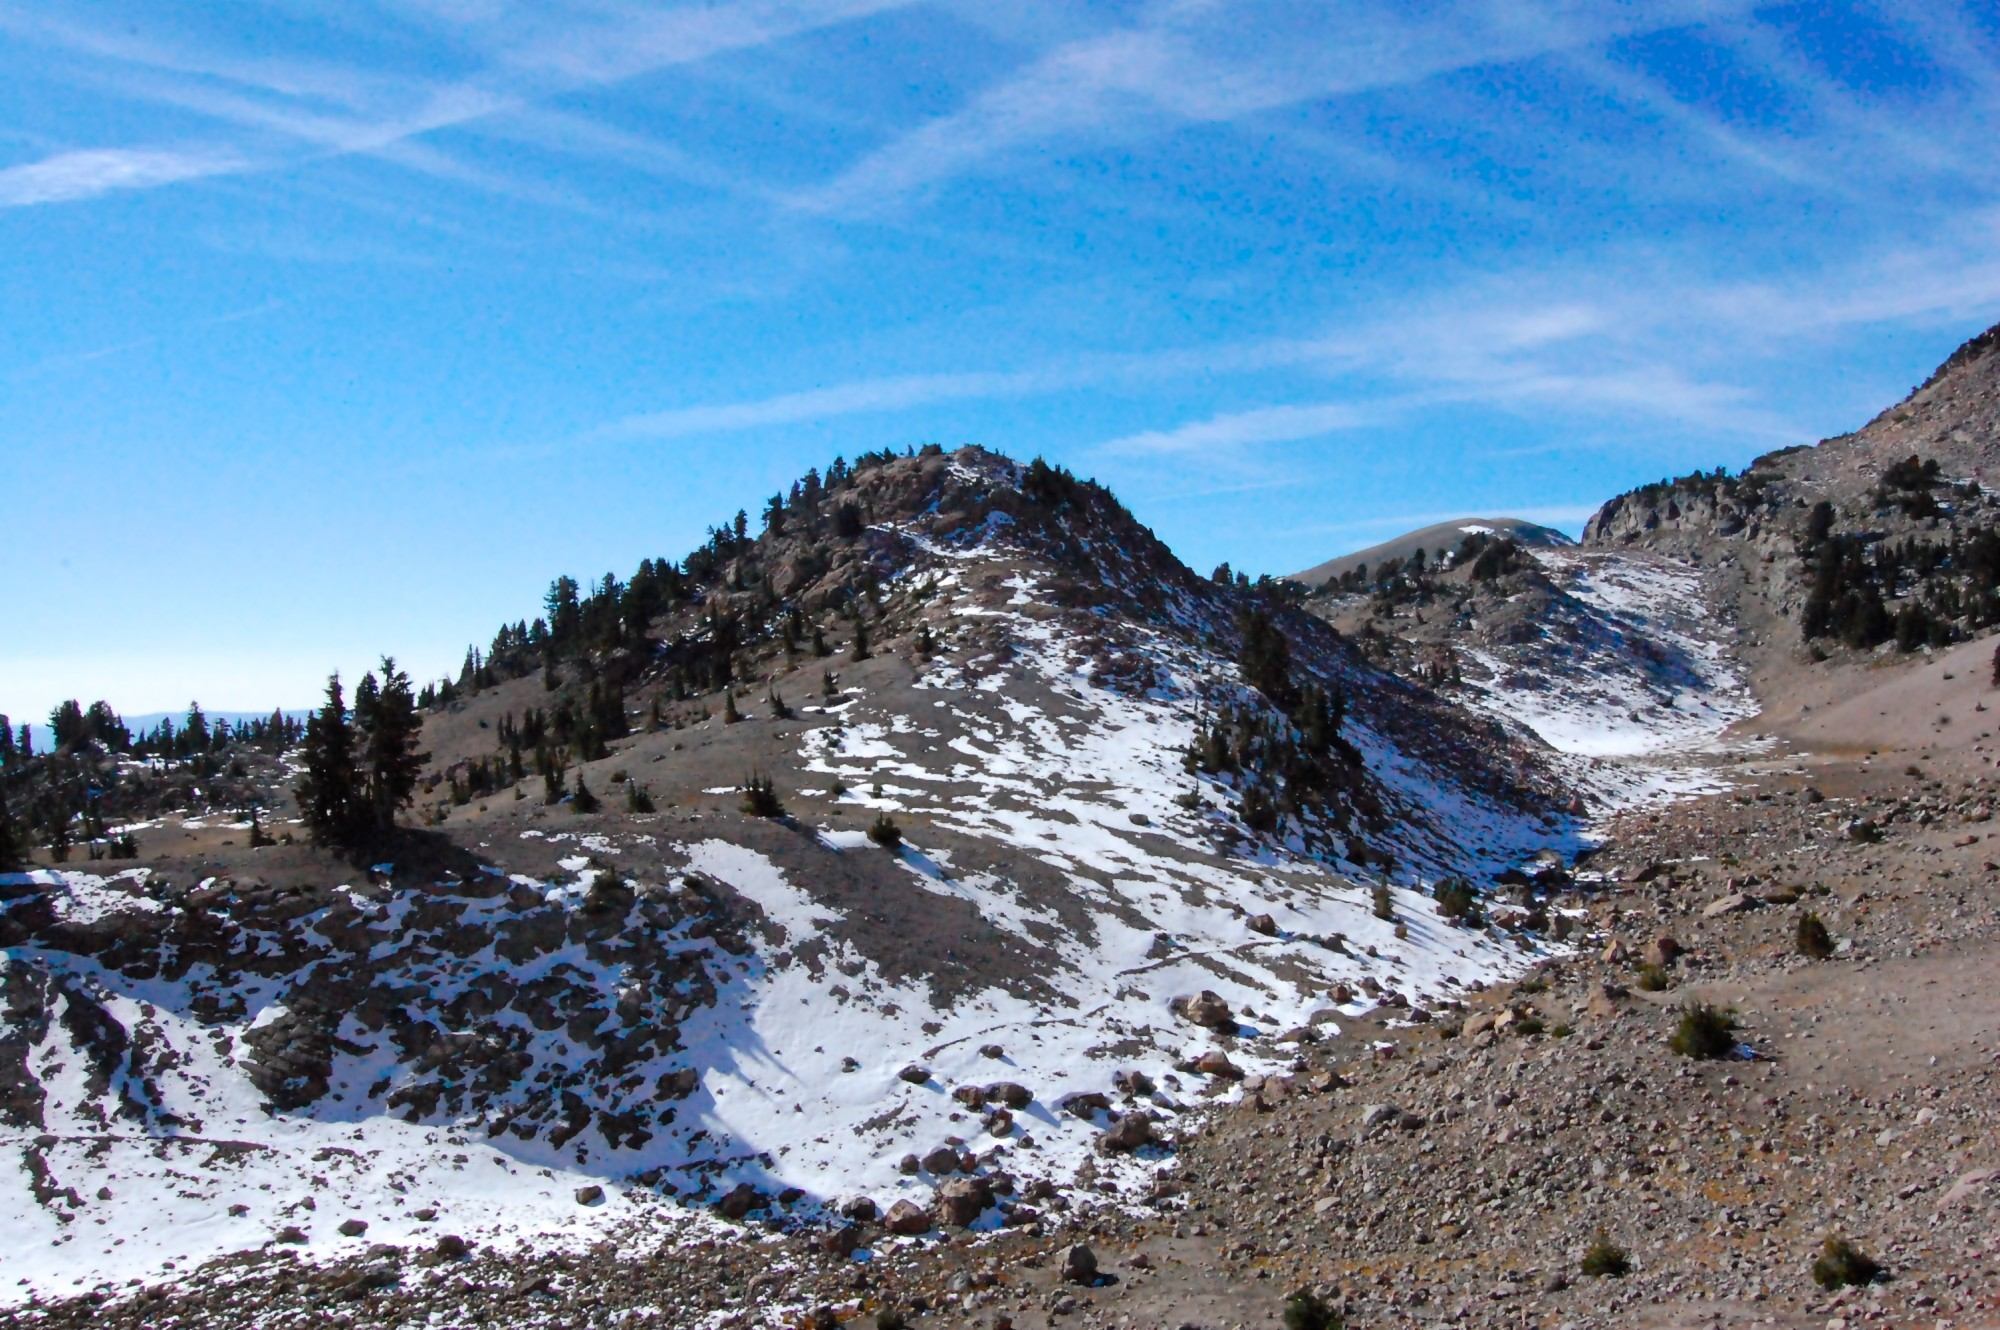 Views on a hike at Lassen Volcanic National Park